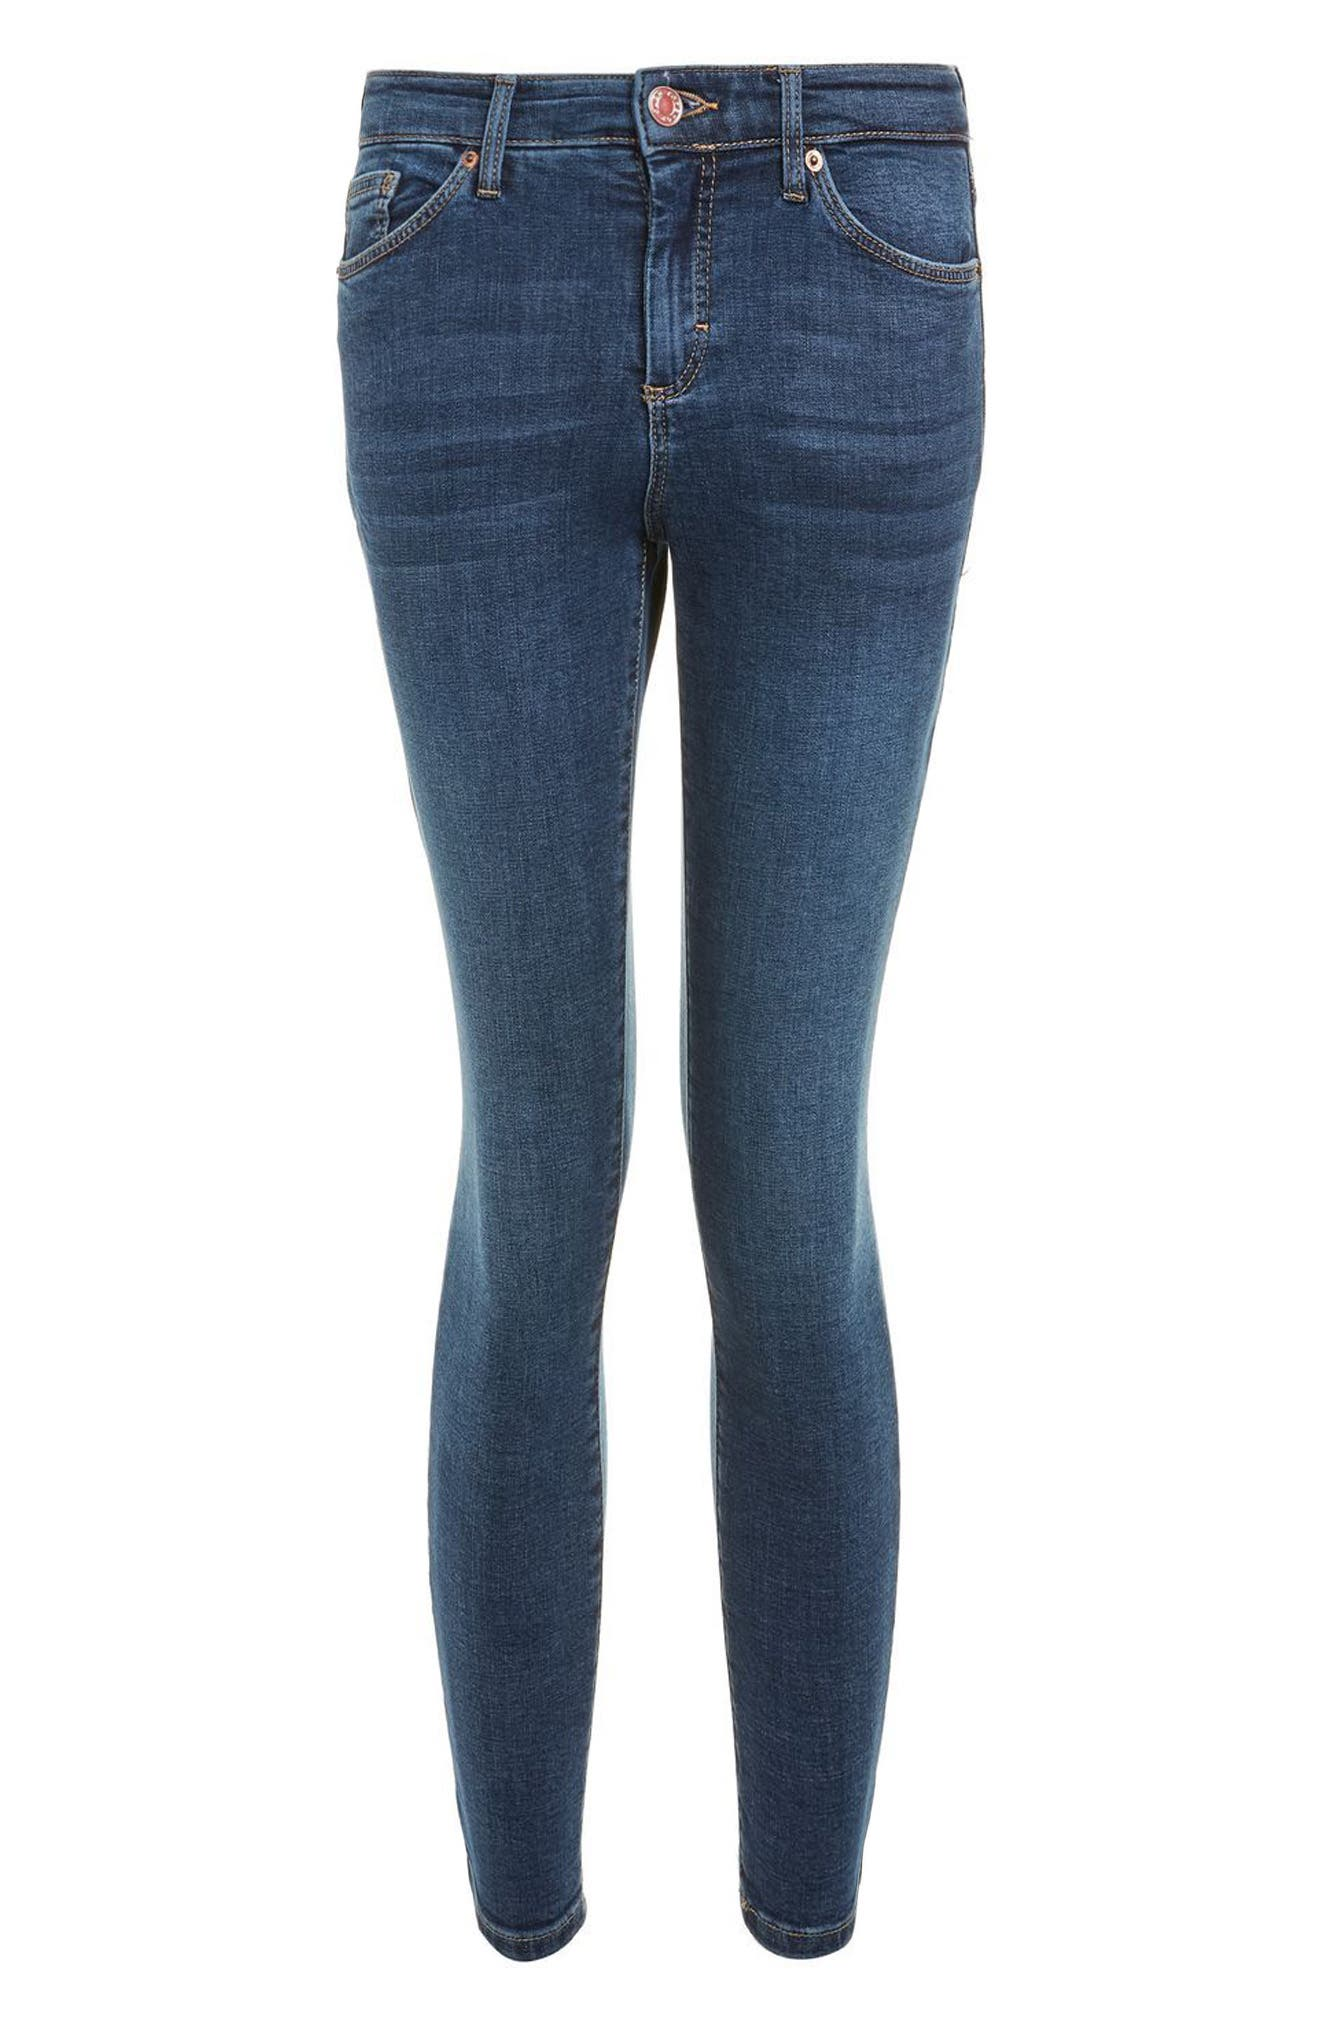 Sidney Ankle Skinny Jeans,                             Alternate thumbnail 4, color,                             400